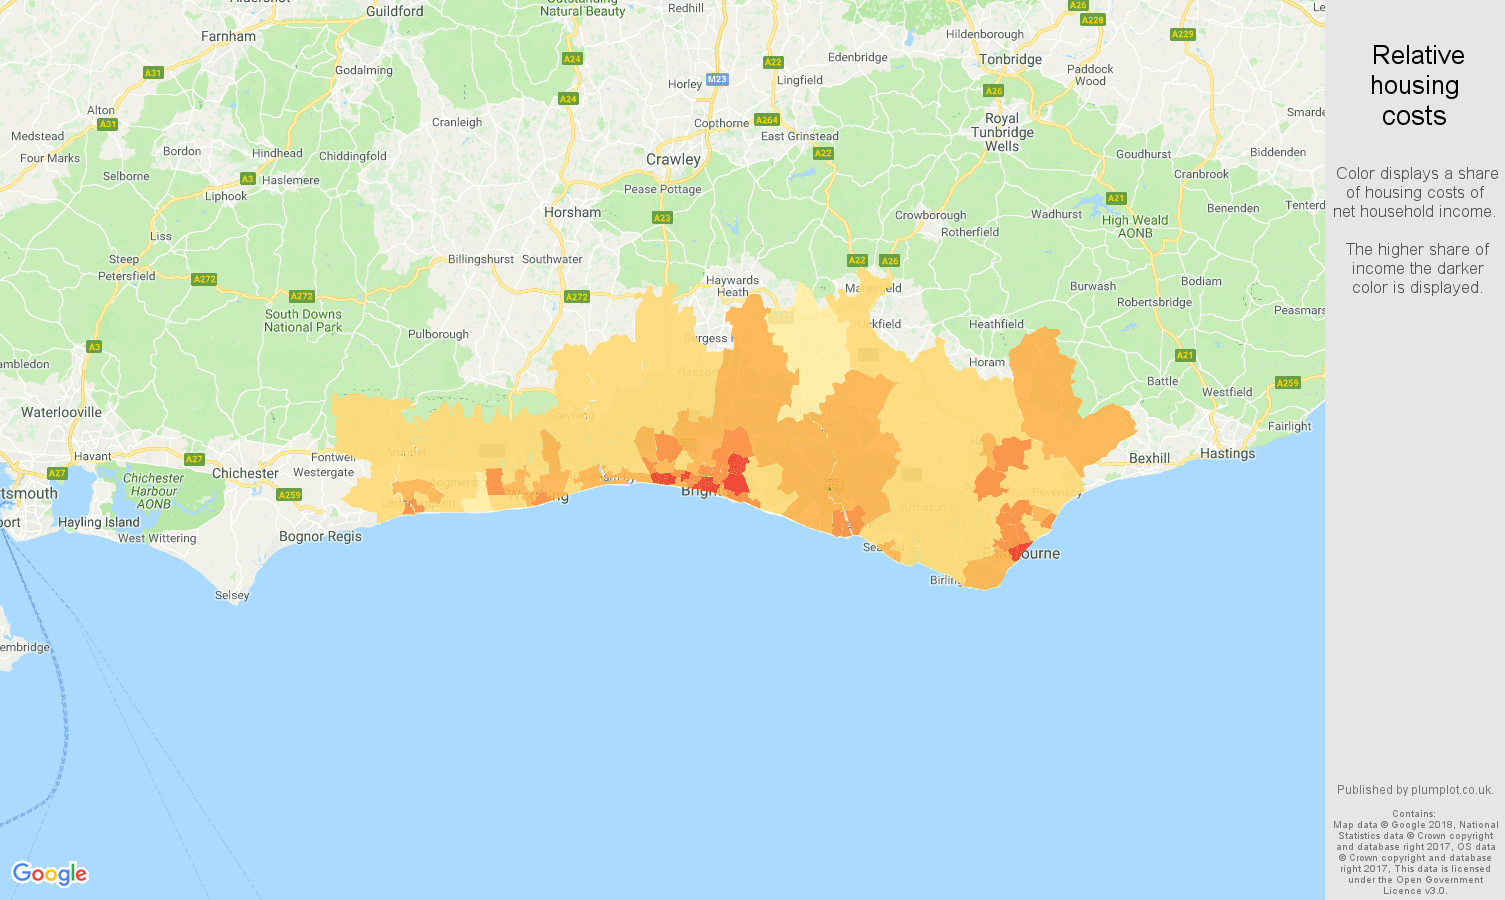 Brighton relative housing costs map